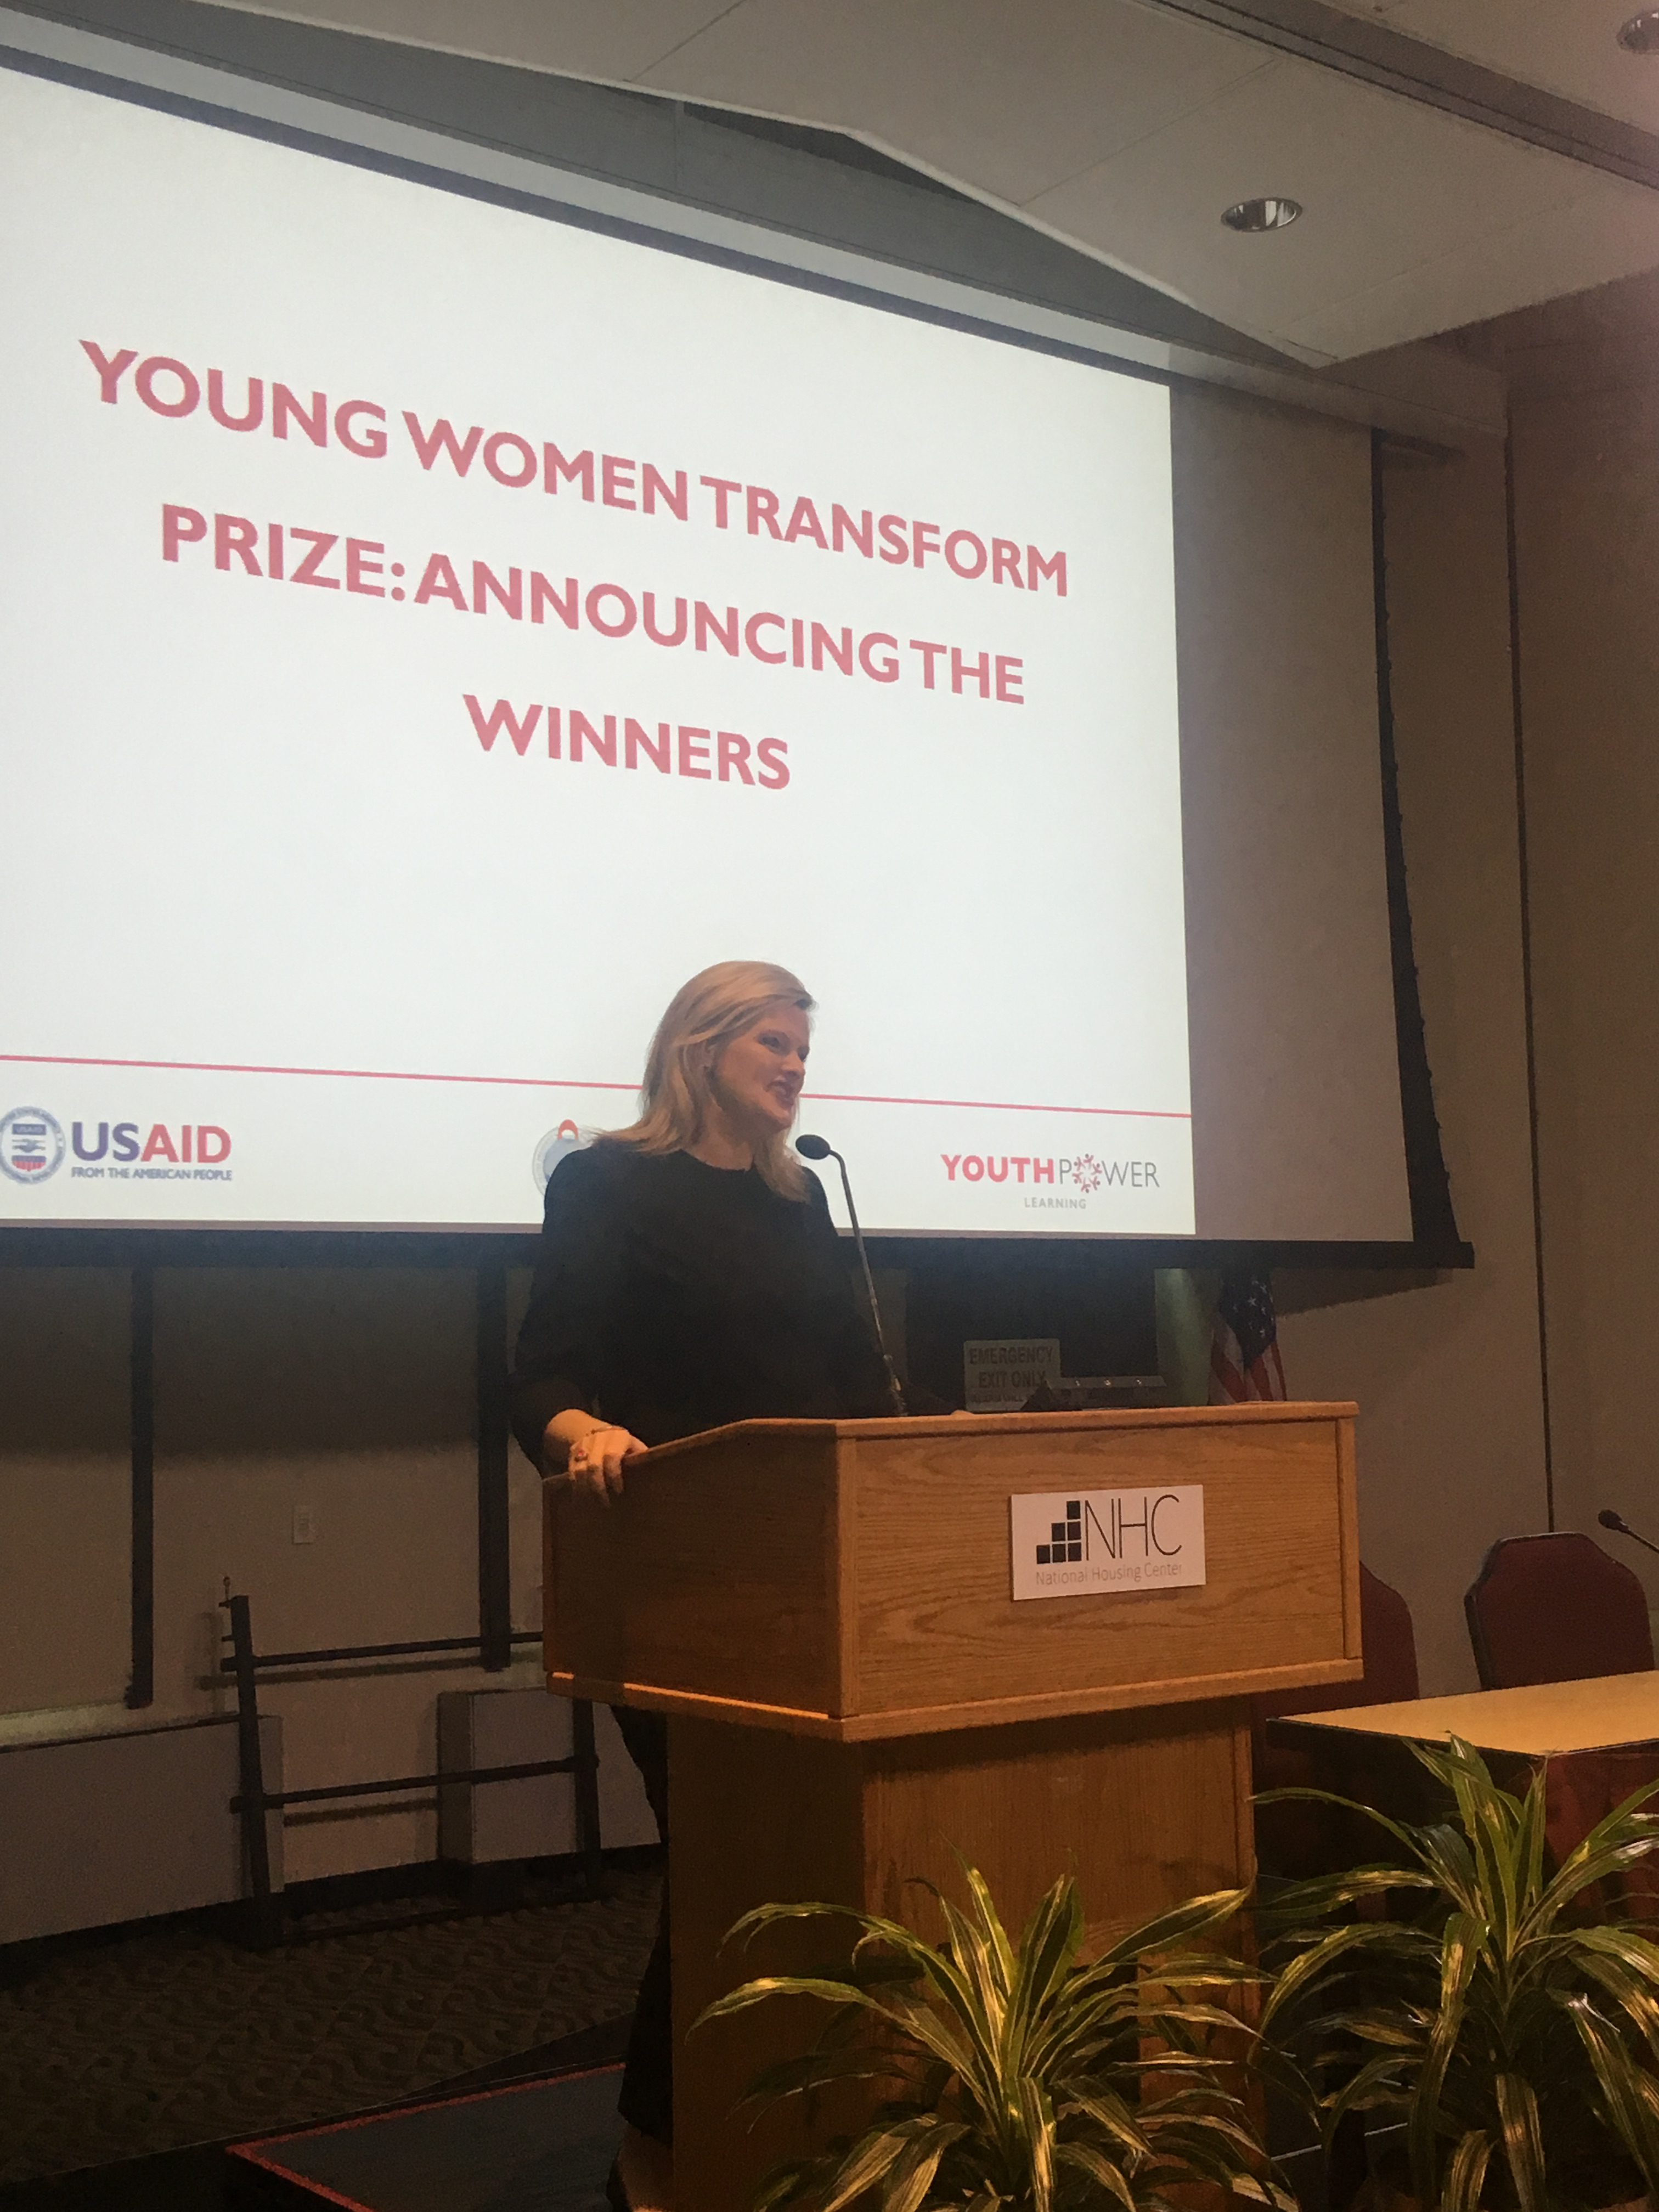 Michelle Bekkering, USAID, opens the 2018 YouthPower Annual Learning Network Meeting in Washington, D.C.